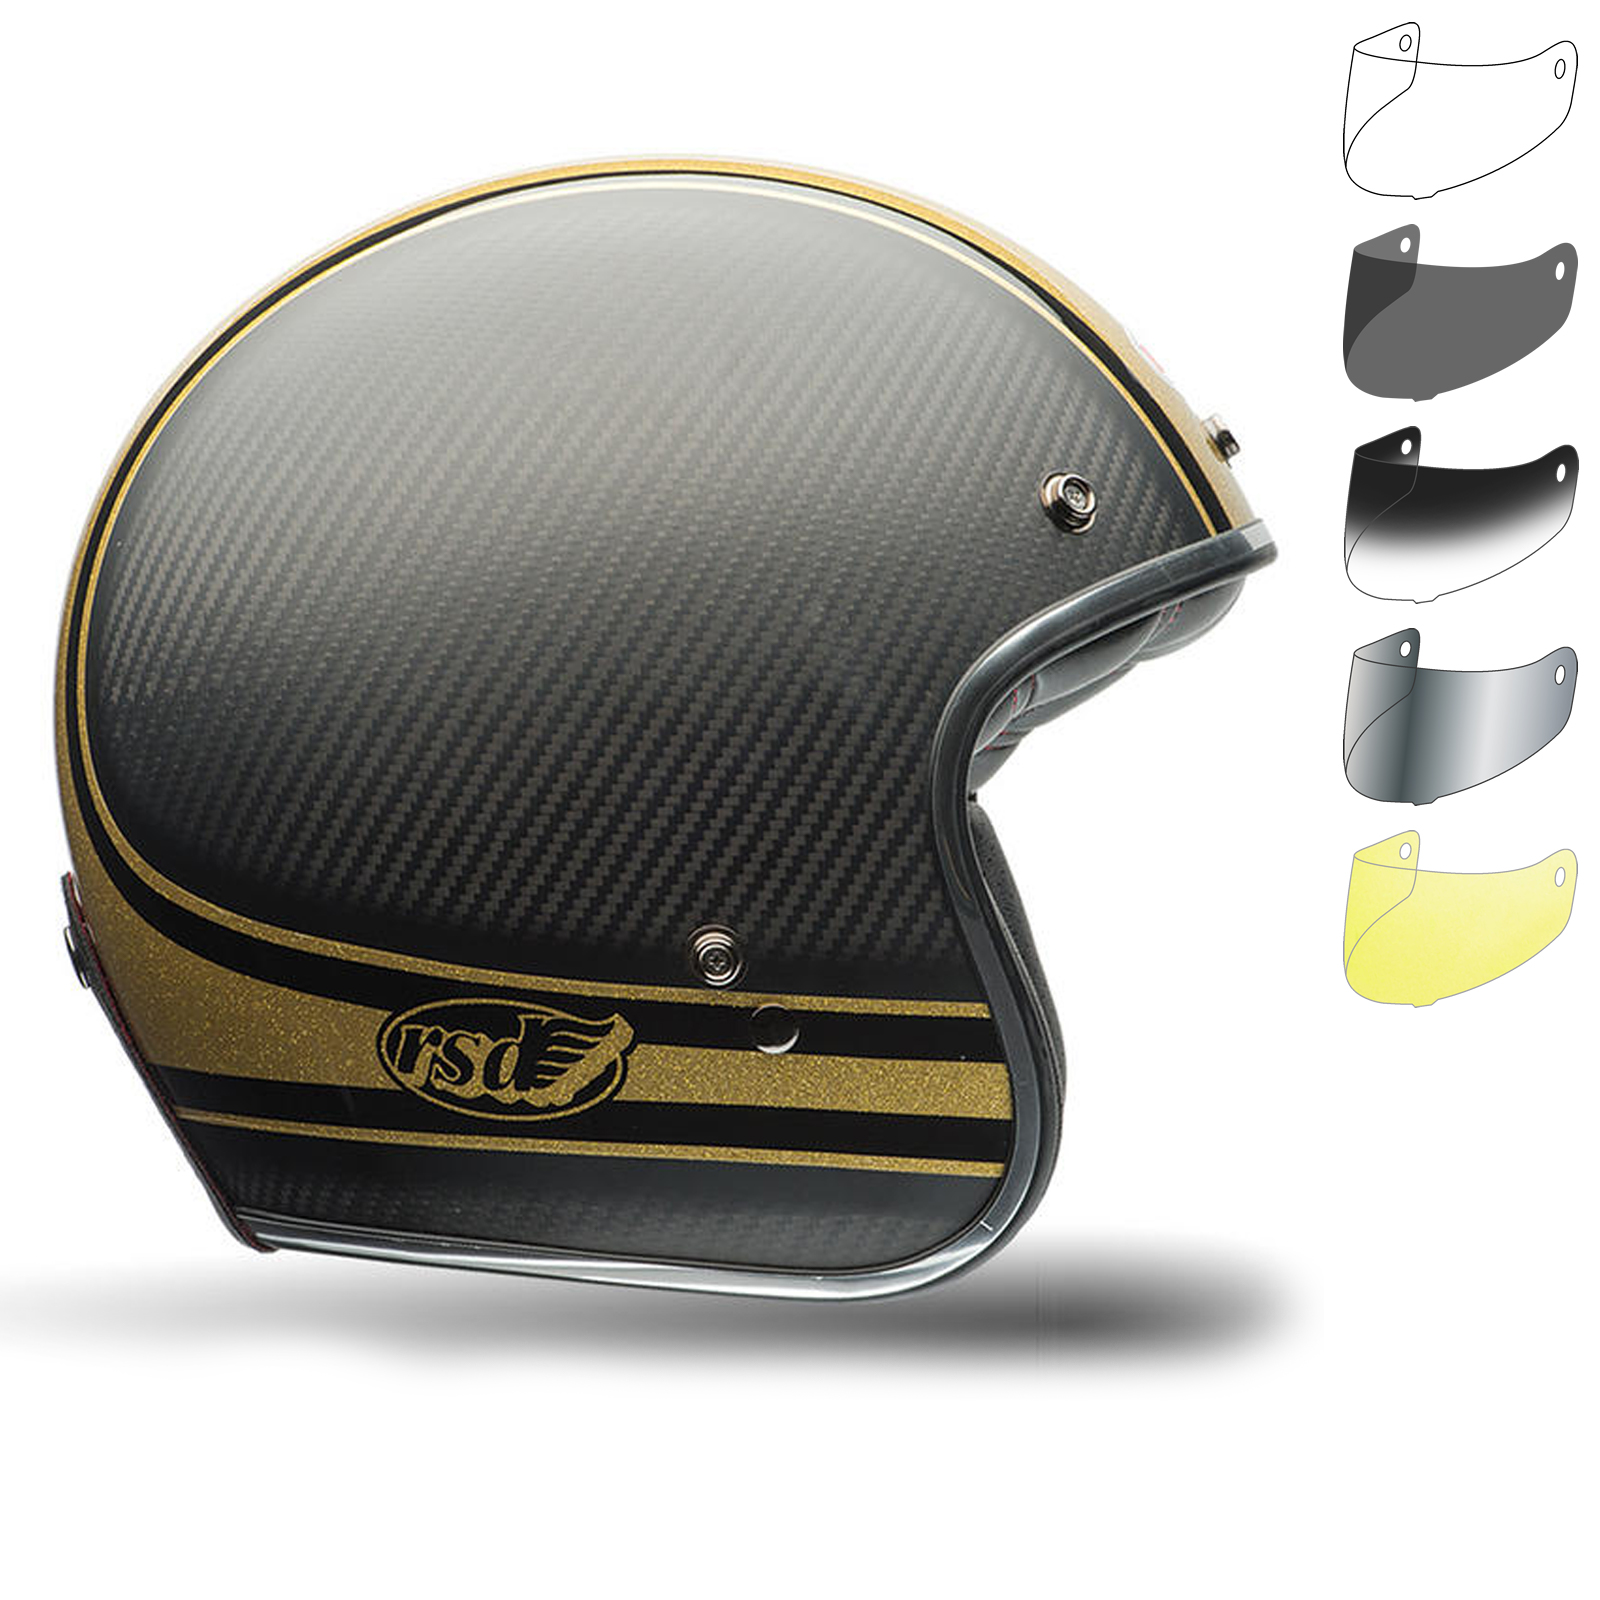 bell custom 500 carbon rsd bomb motorcycle helmet bubble. Black Bedroom Furniture Sets. Home Design Ideas